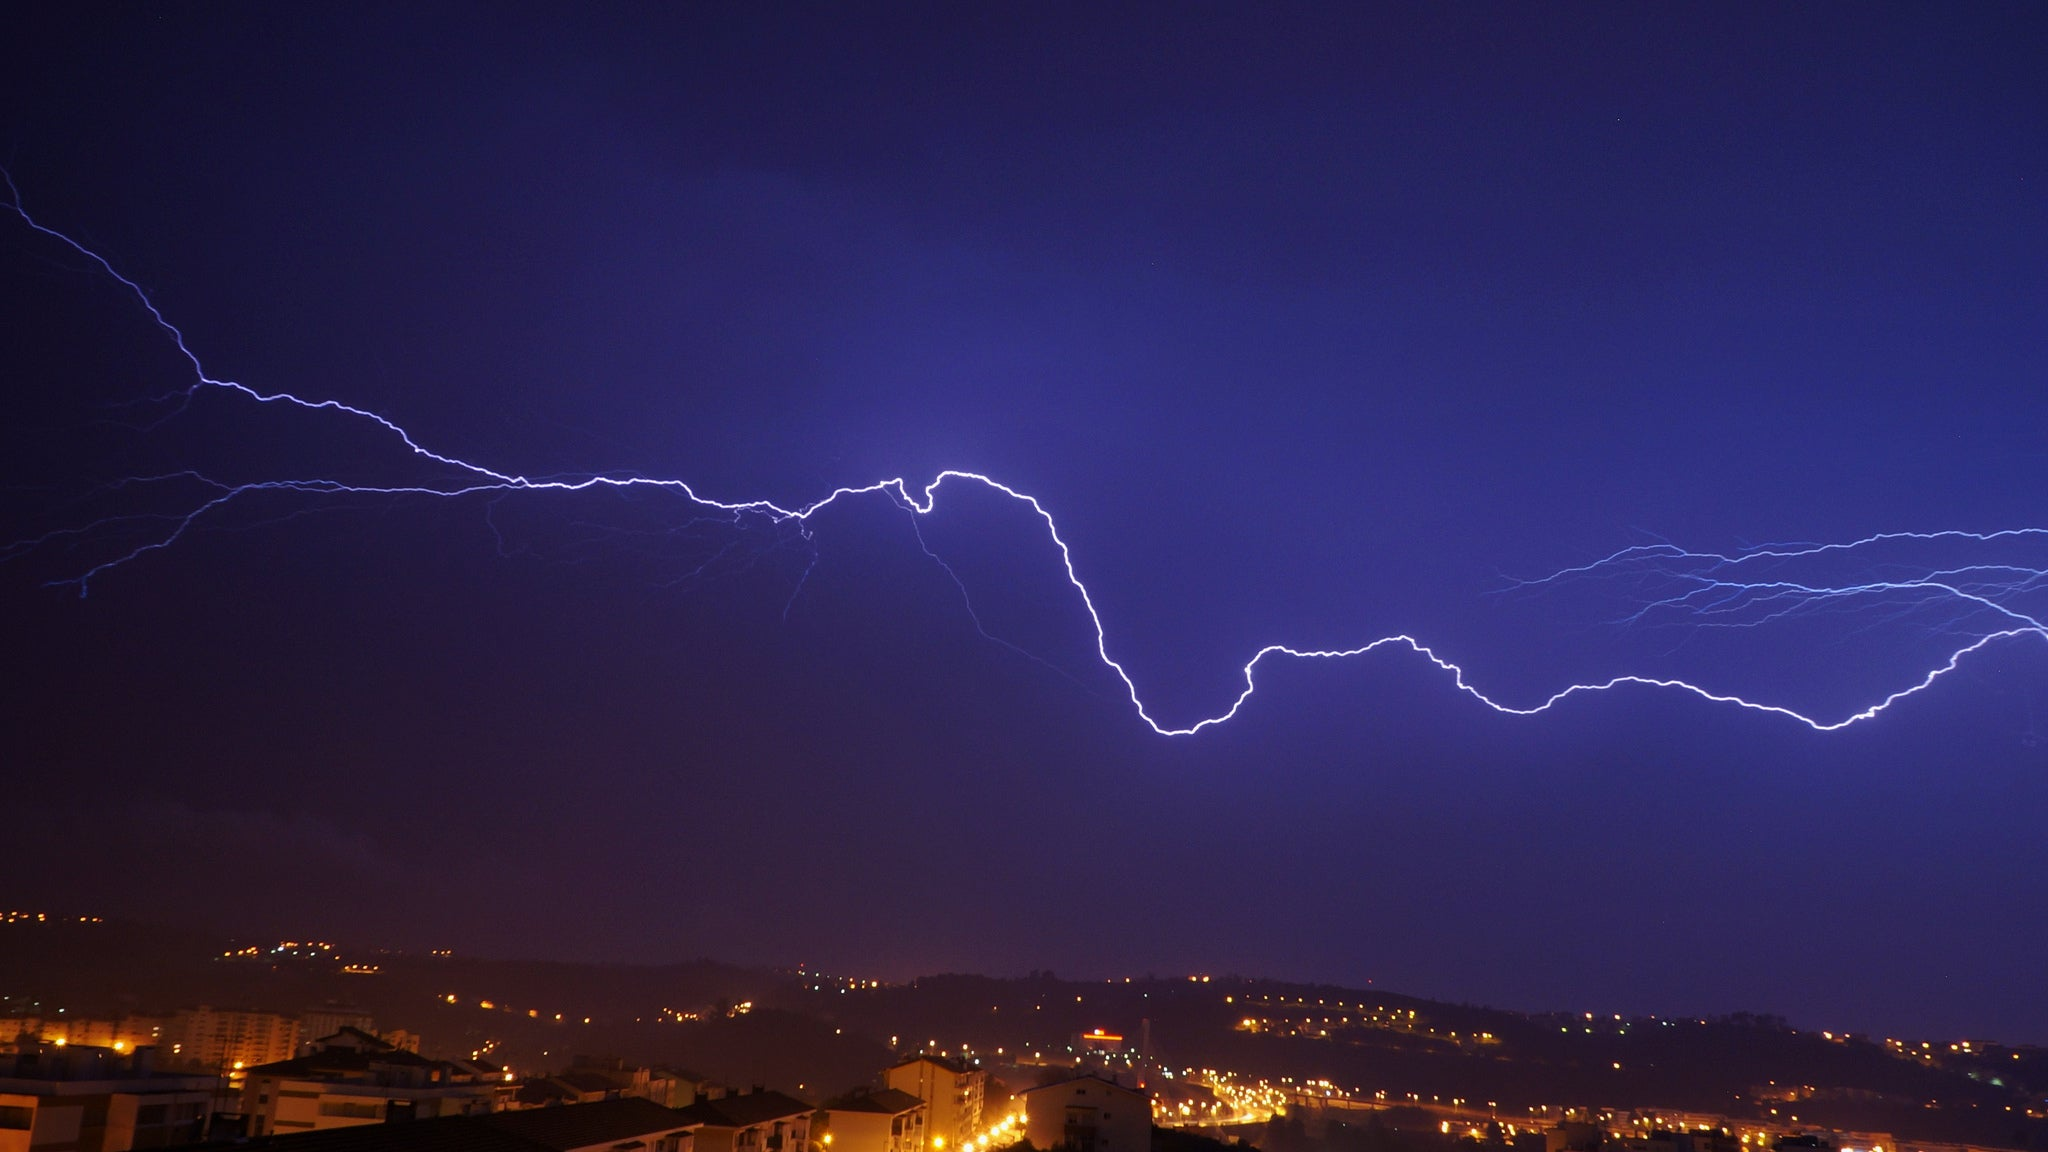 Thunderstorm Turns Into A Nuclear Reactor And Blasts Radiation Everywhere